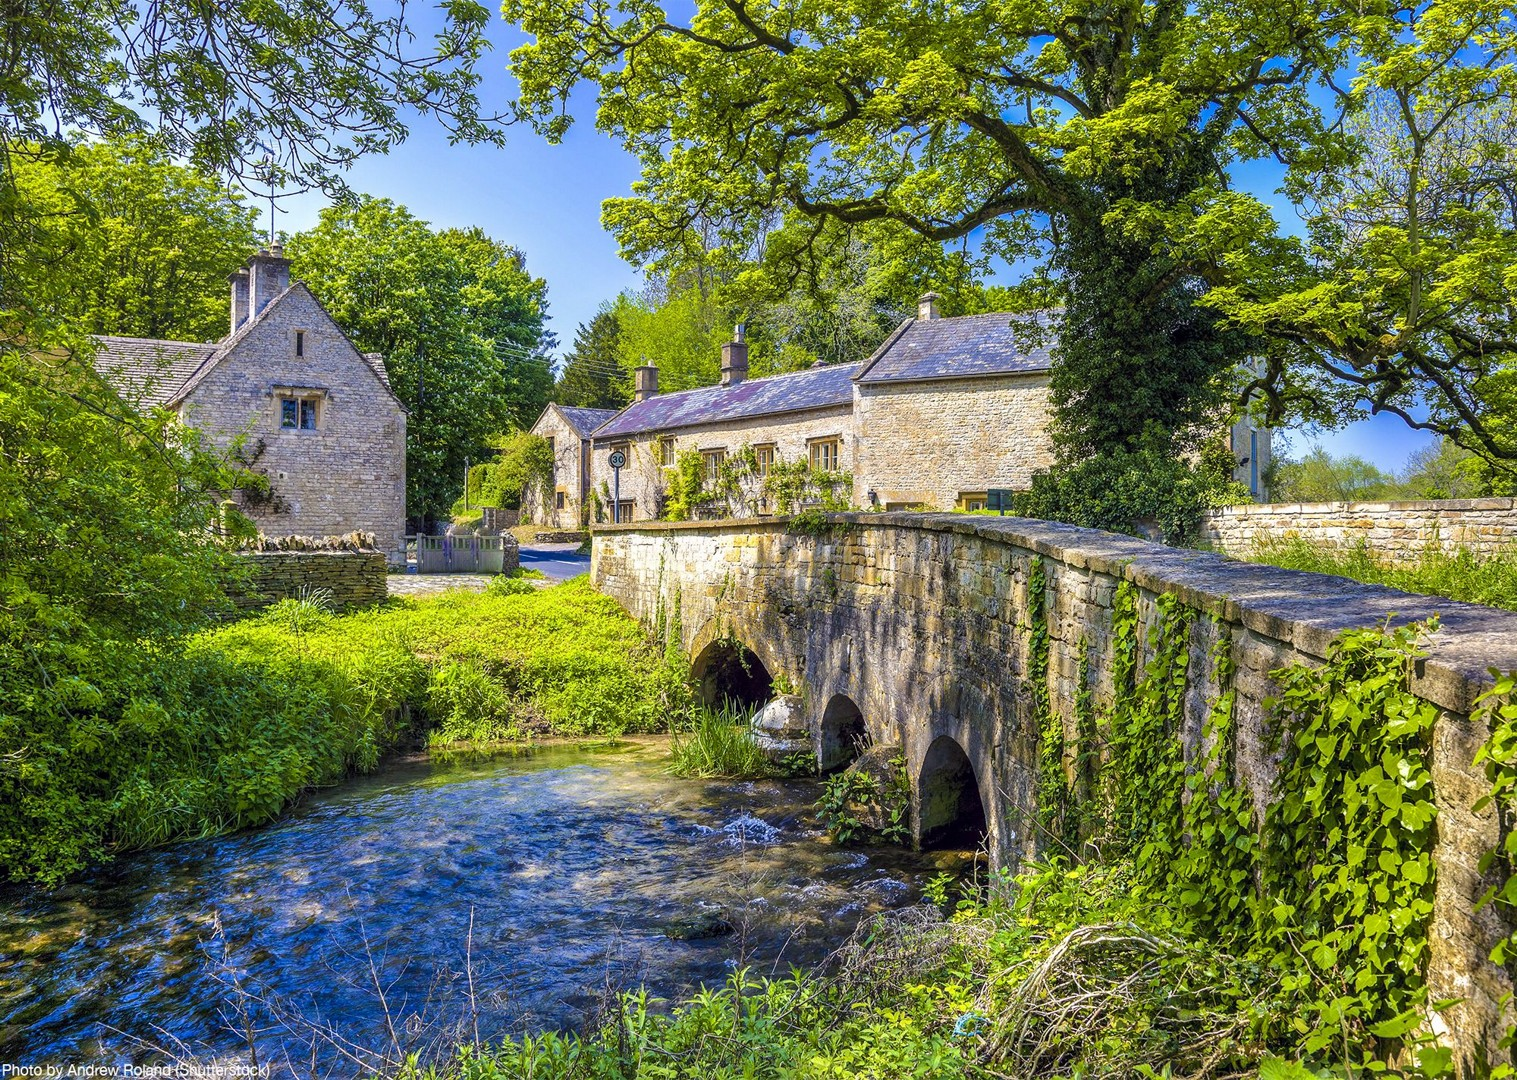 british-rivers-villages-cycling-bike-tour-uk-saddle-skedaddle-cotswolds-bourton.jpg - UK - Cotswolds - Bourton-on-the-Water - Guided Leisure Cycling Holiday - Leisure Cycling